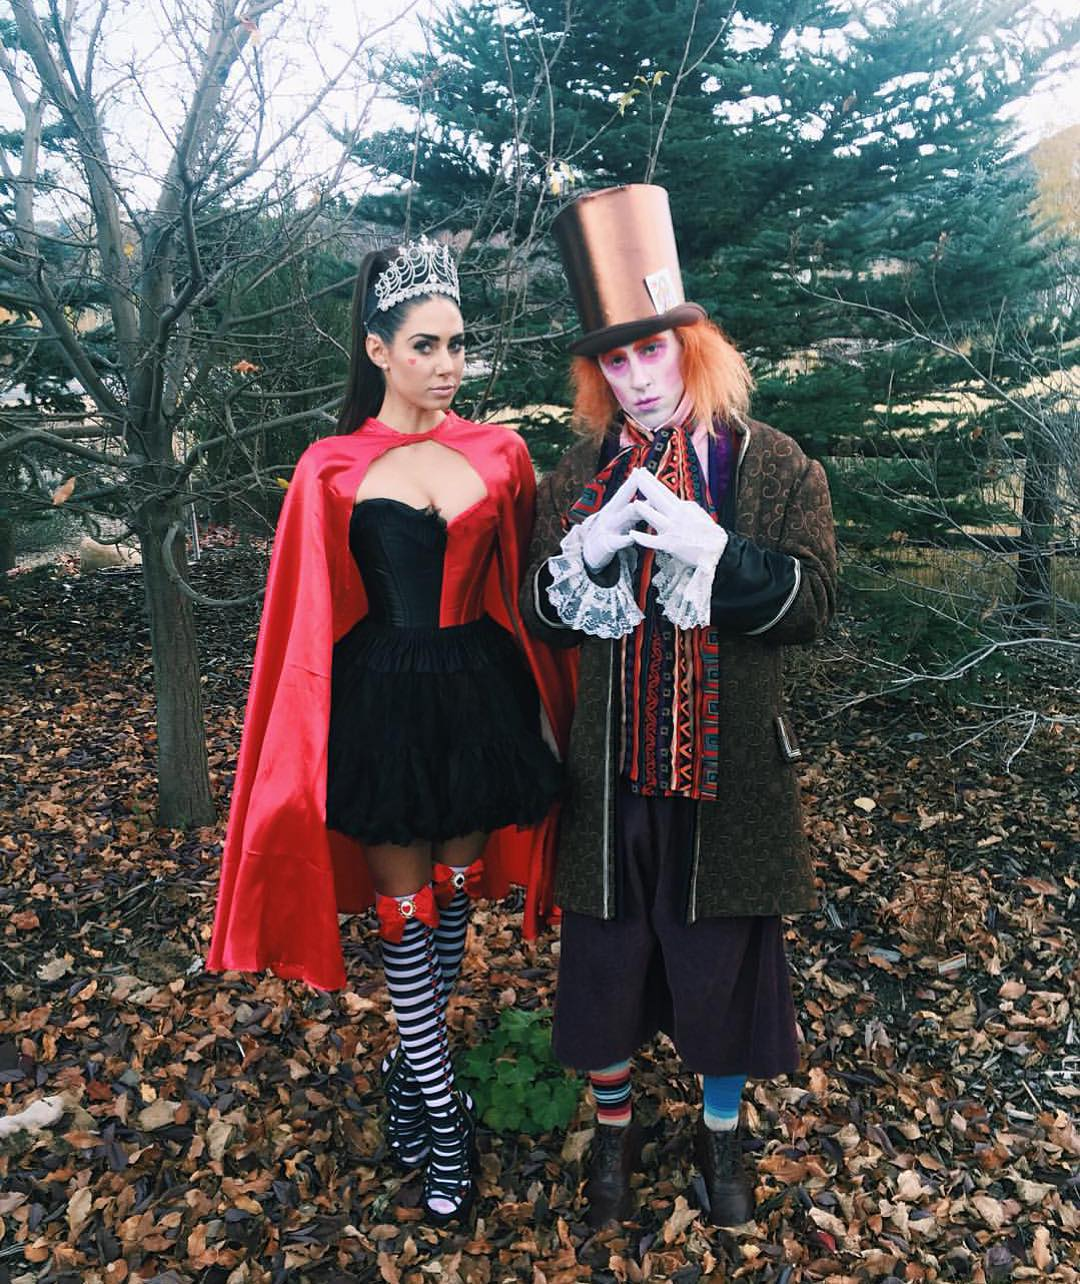 Two-time #XGames medalist @SageKotsenburg dressed up as the Mad Hatter from 'Alice in Wonderland' for Halloween!